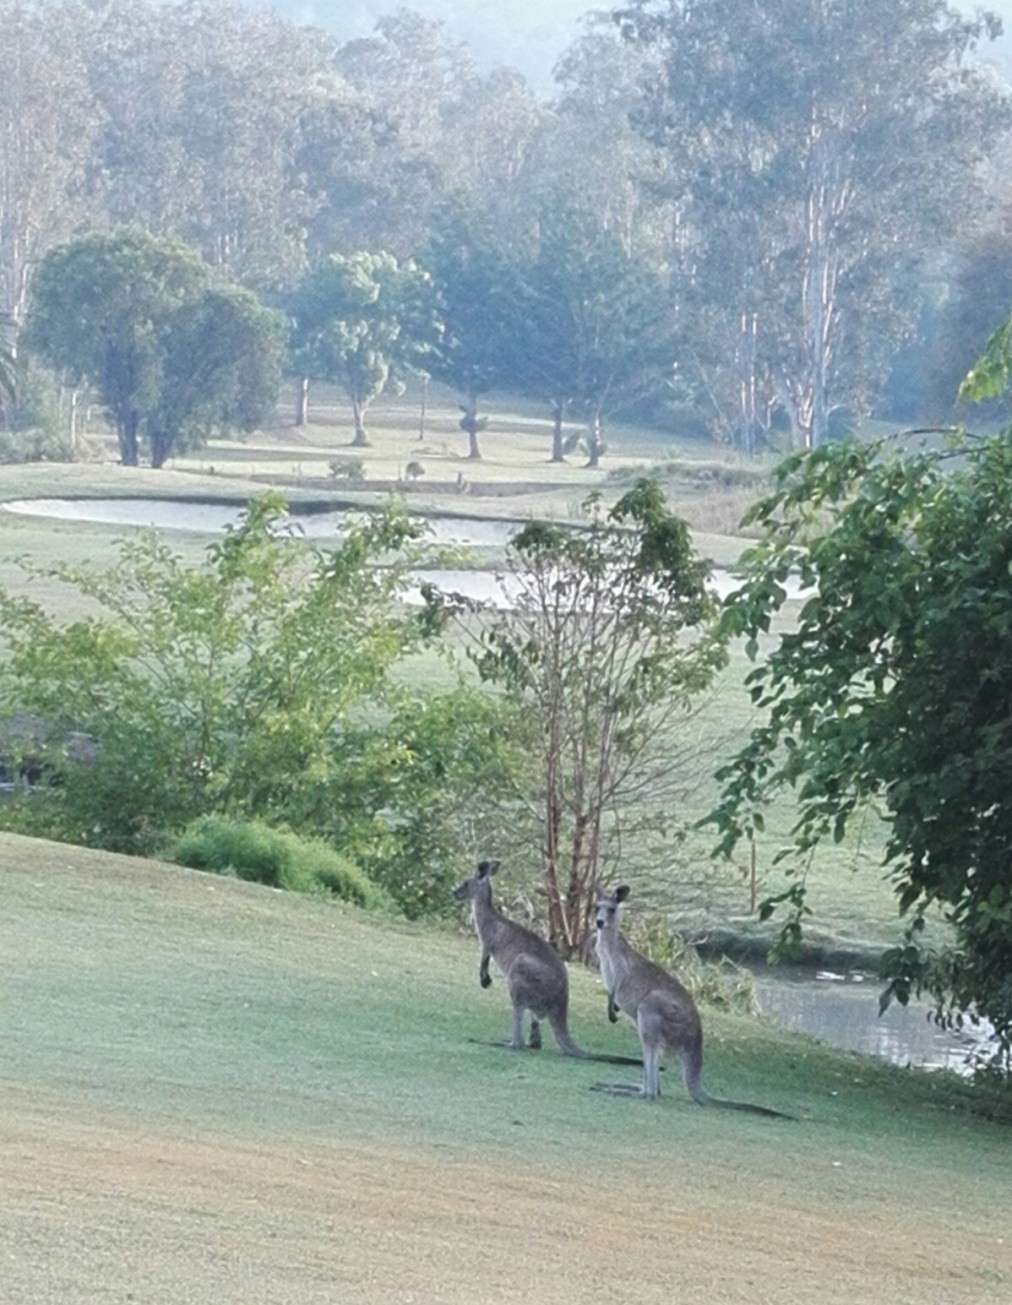 Just another morning in Queensland